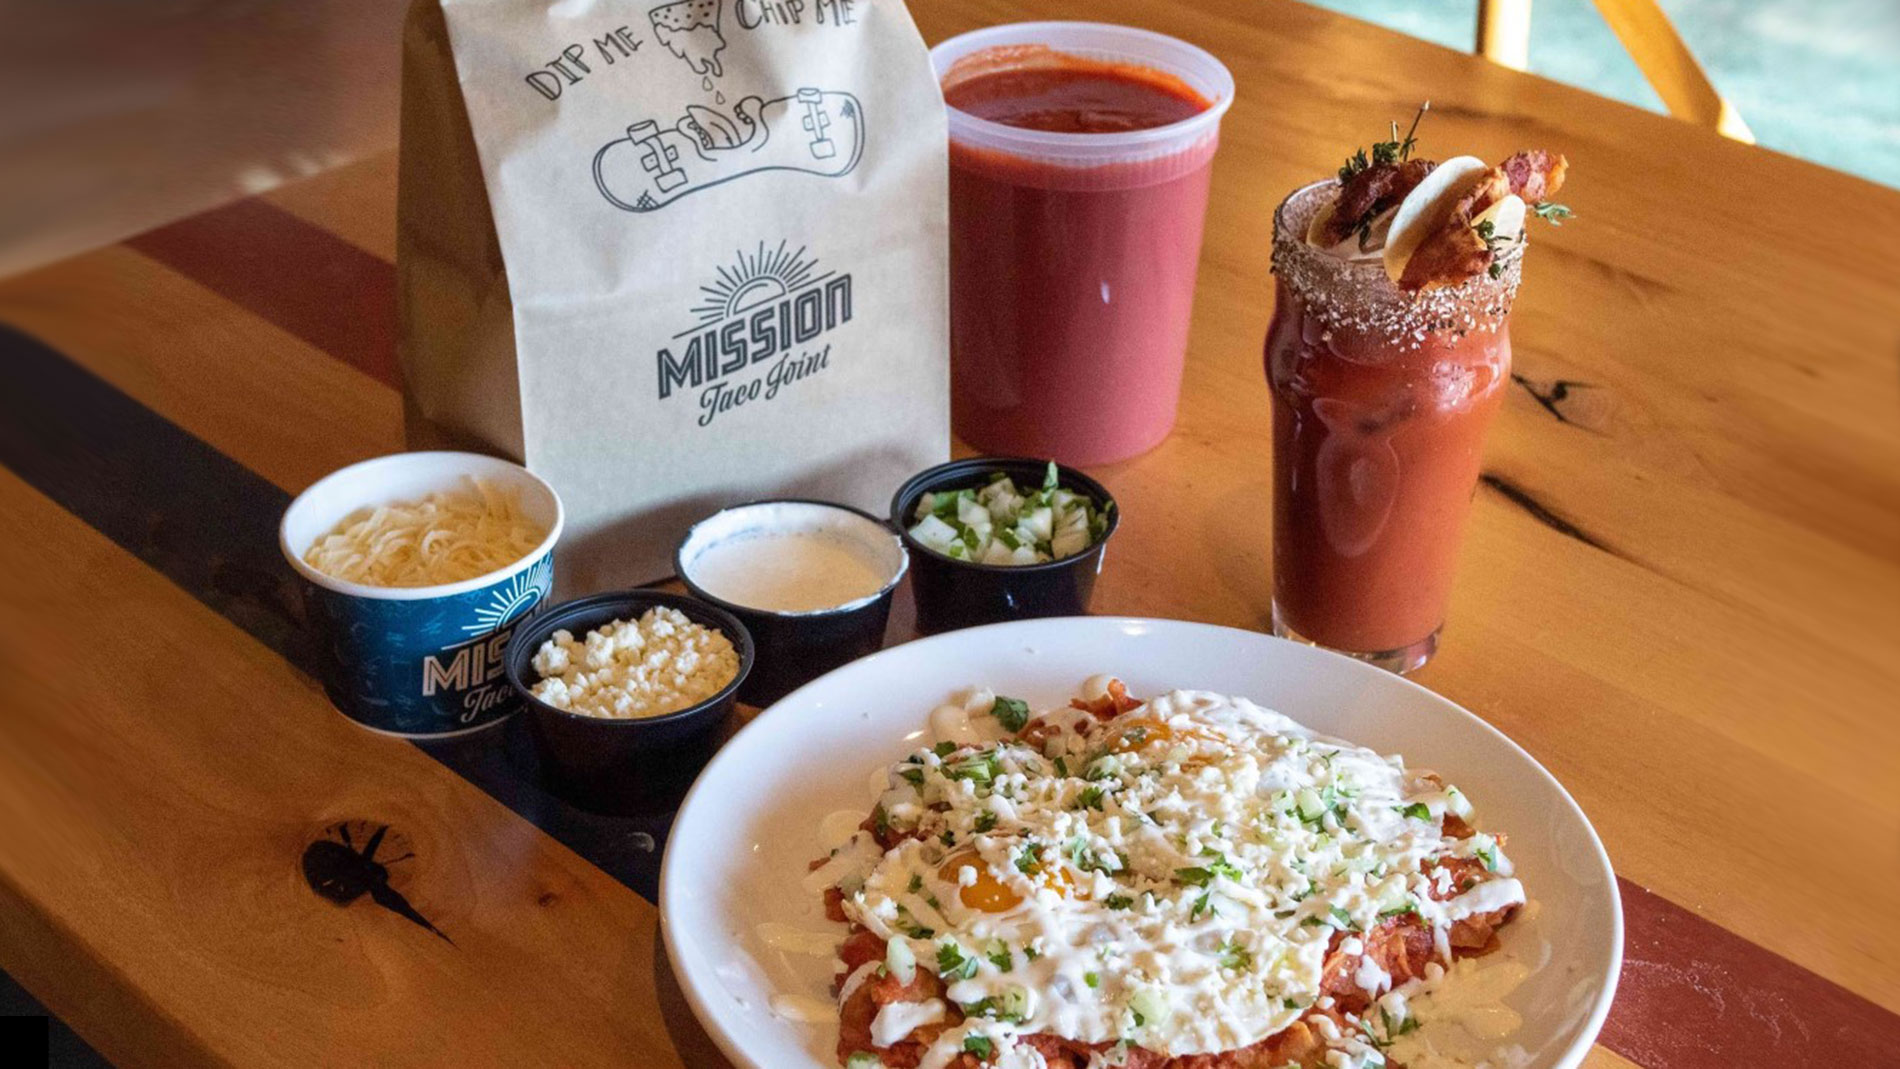 new year's day home hangover kit from mission taco joint